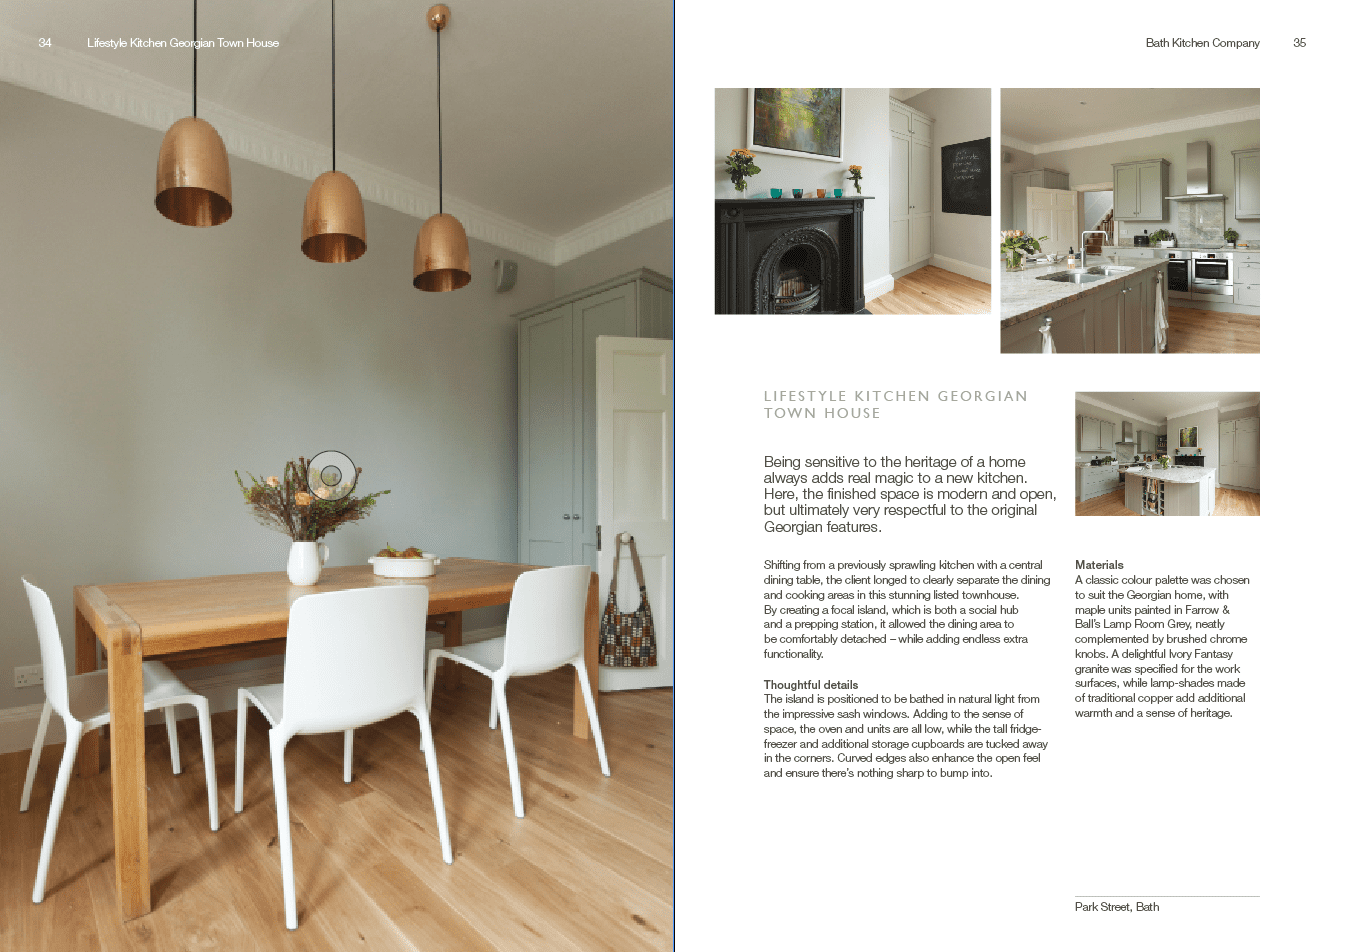 Copy for Bath Kitchen Company brochure